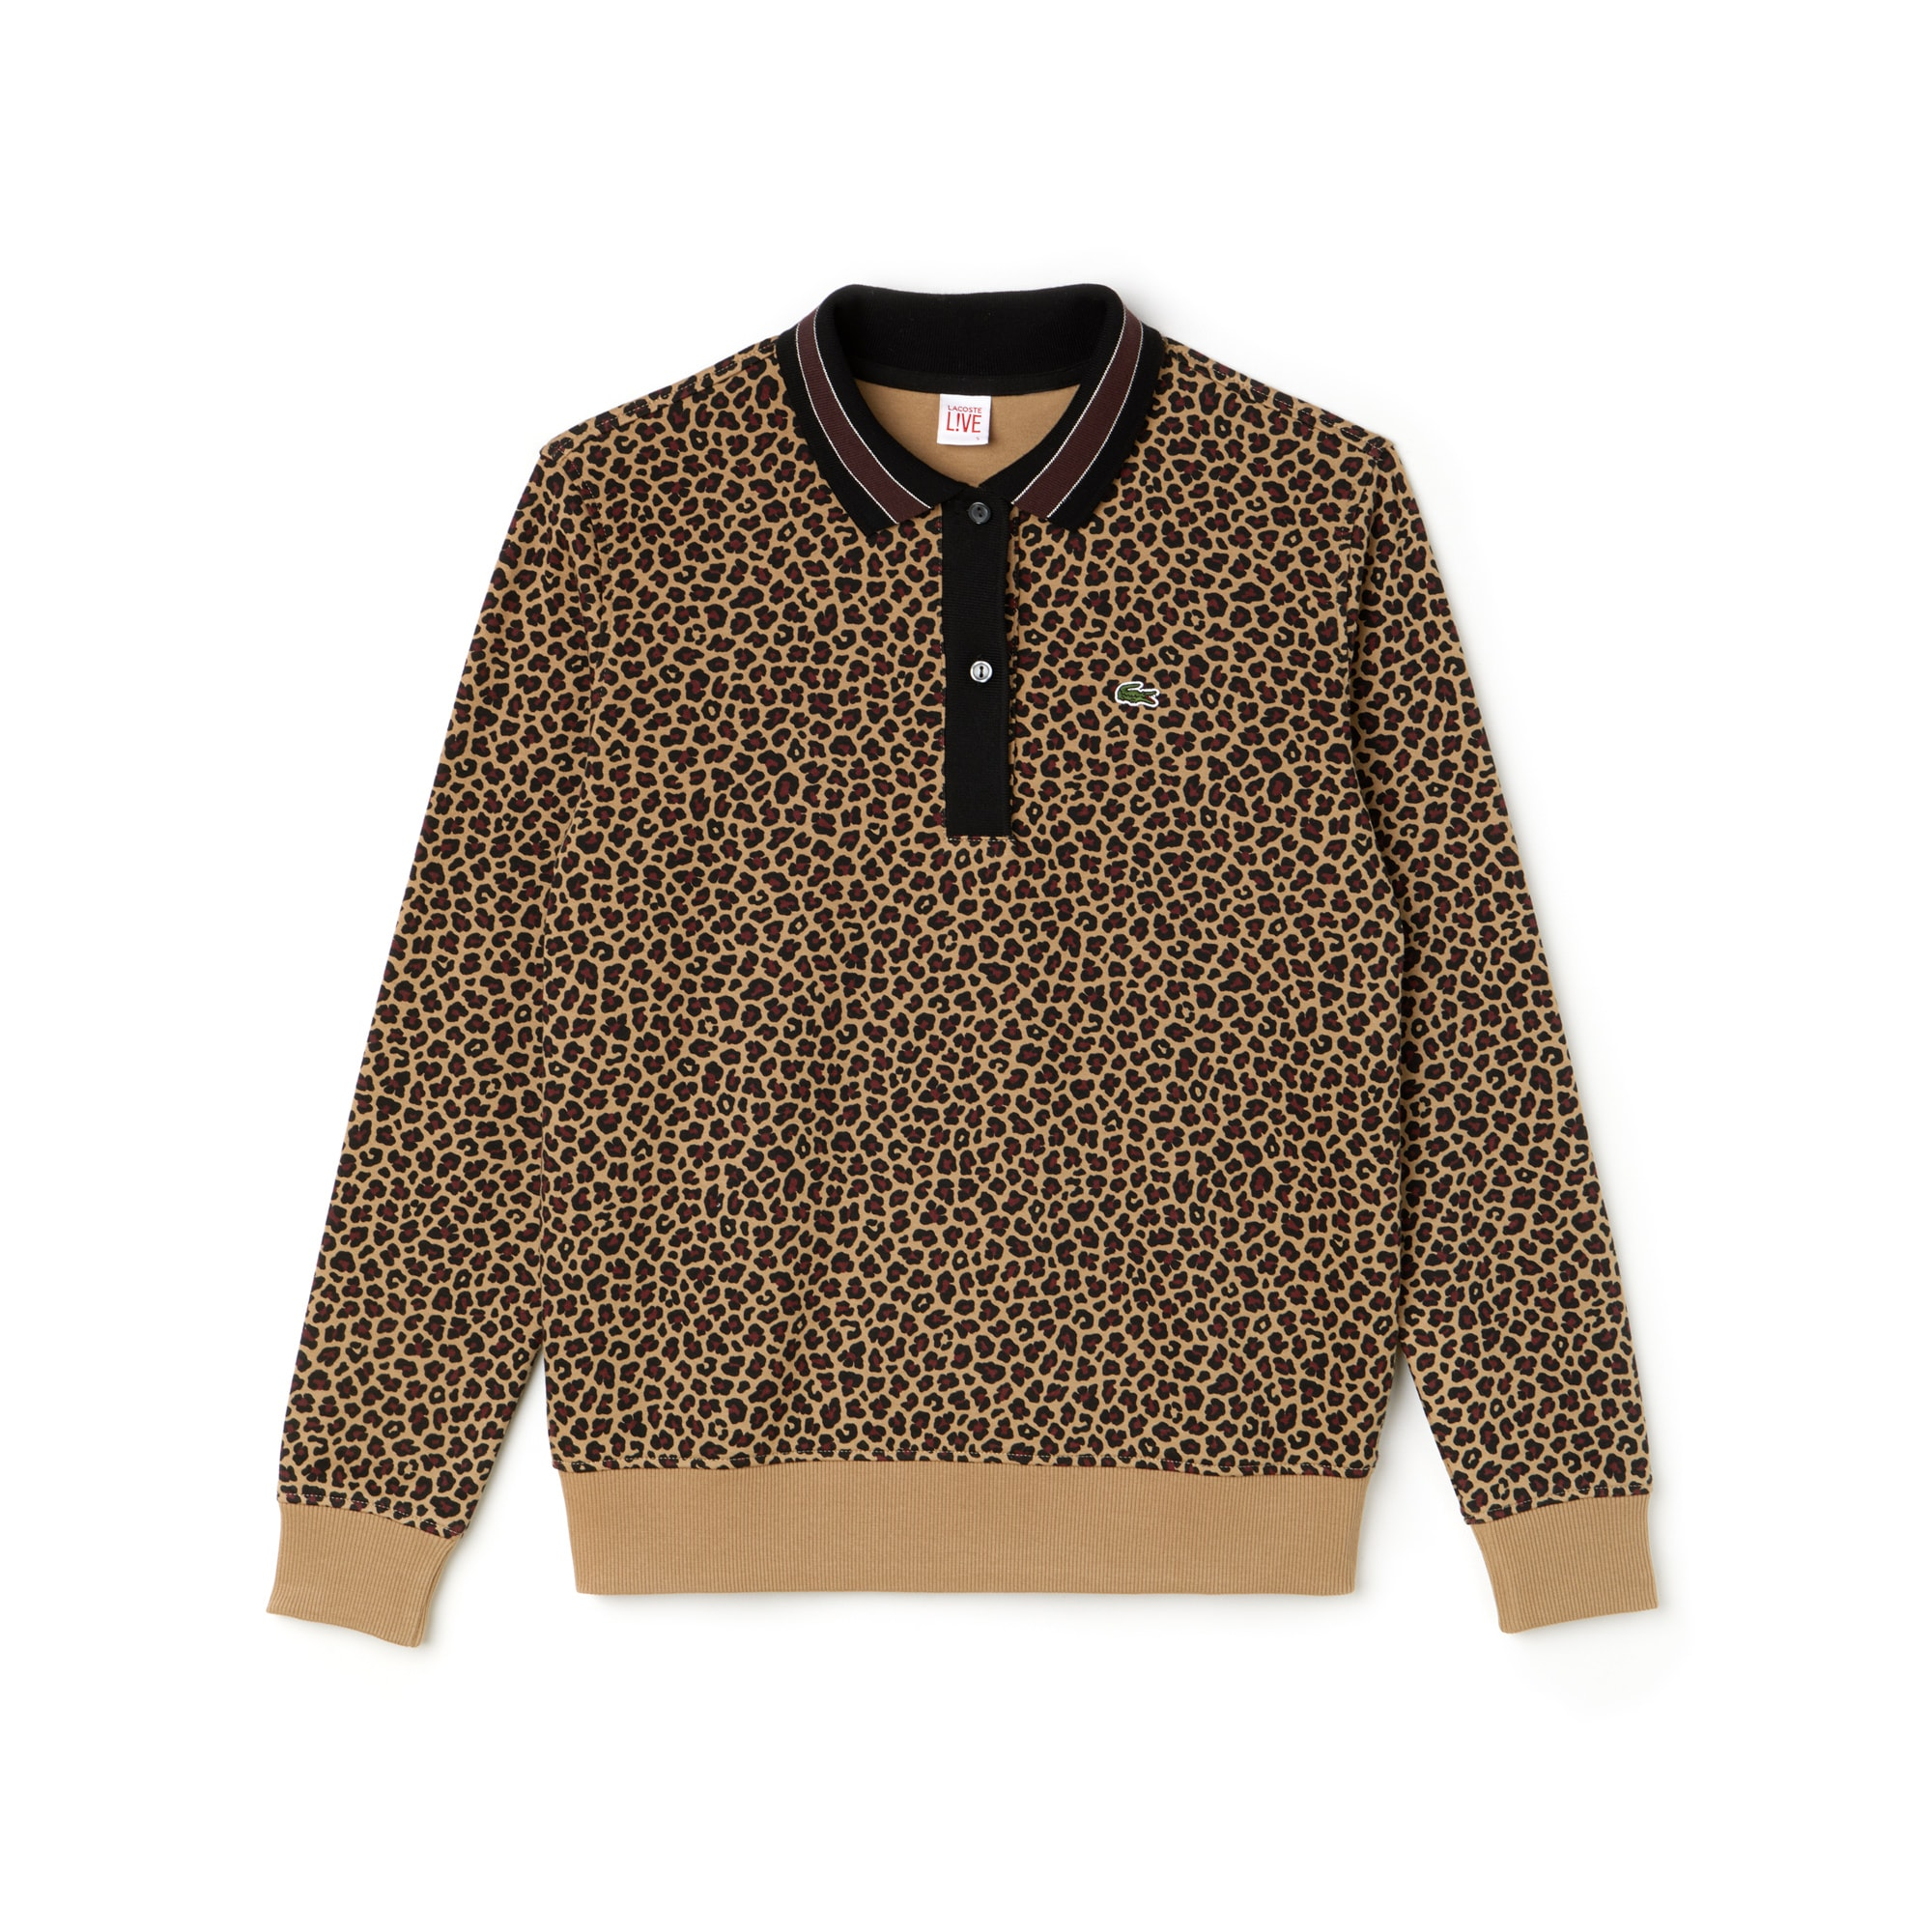 Polo boxy fit Lacoste LIVE in cotone interlock con stampa leopardata